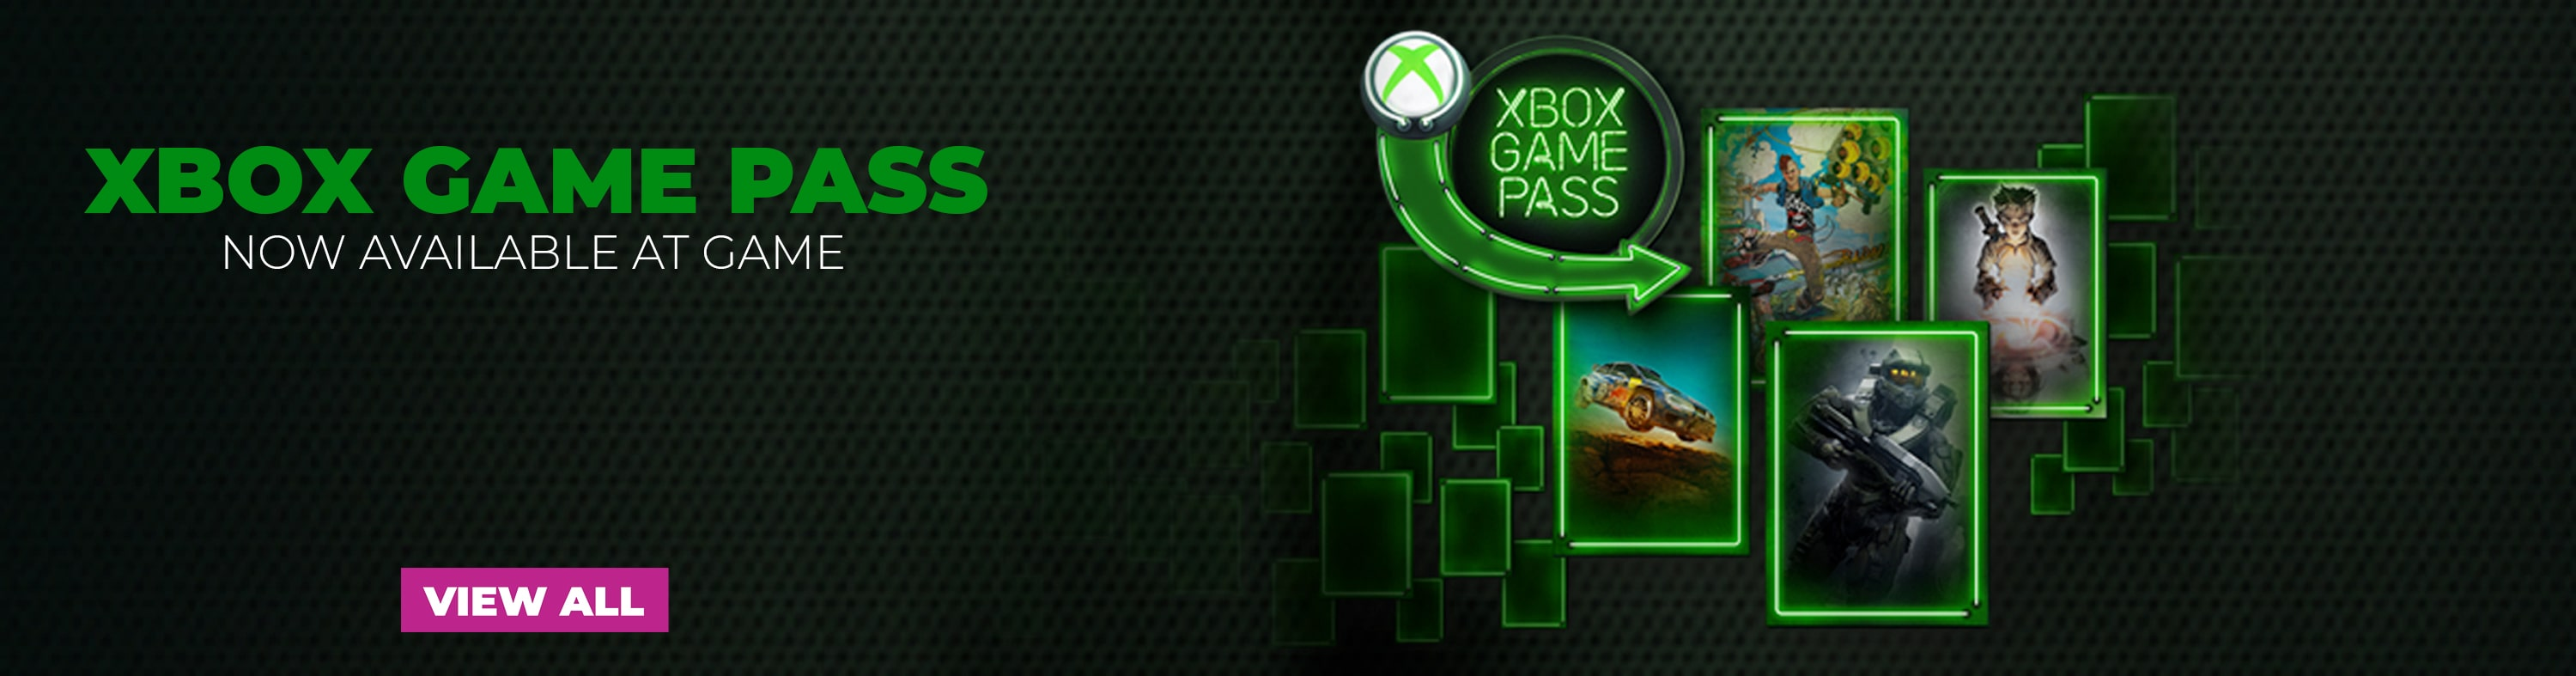 Xbox Game Pass - Now Available at GAME